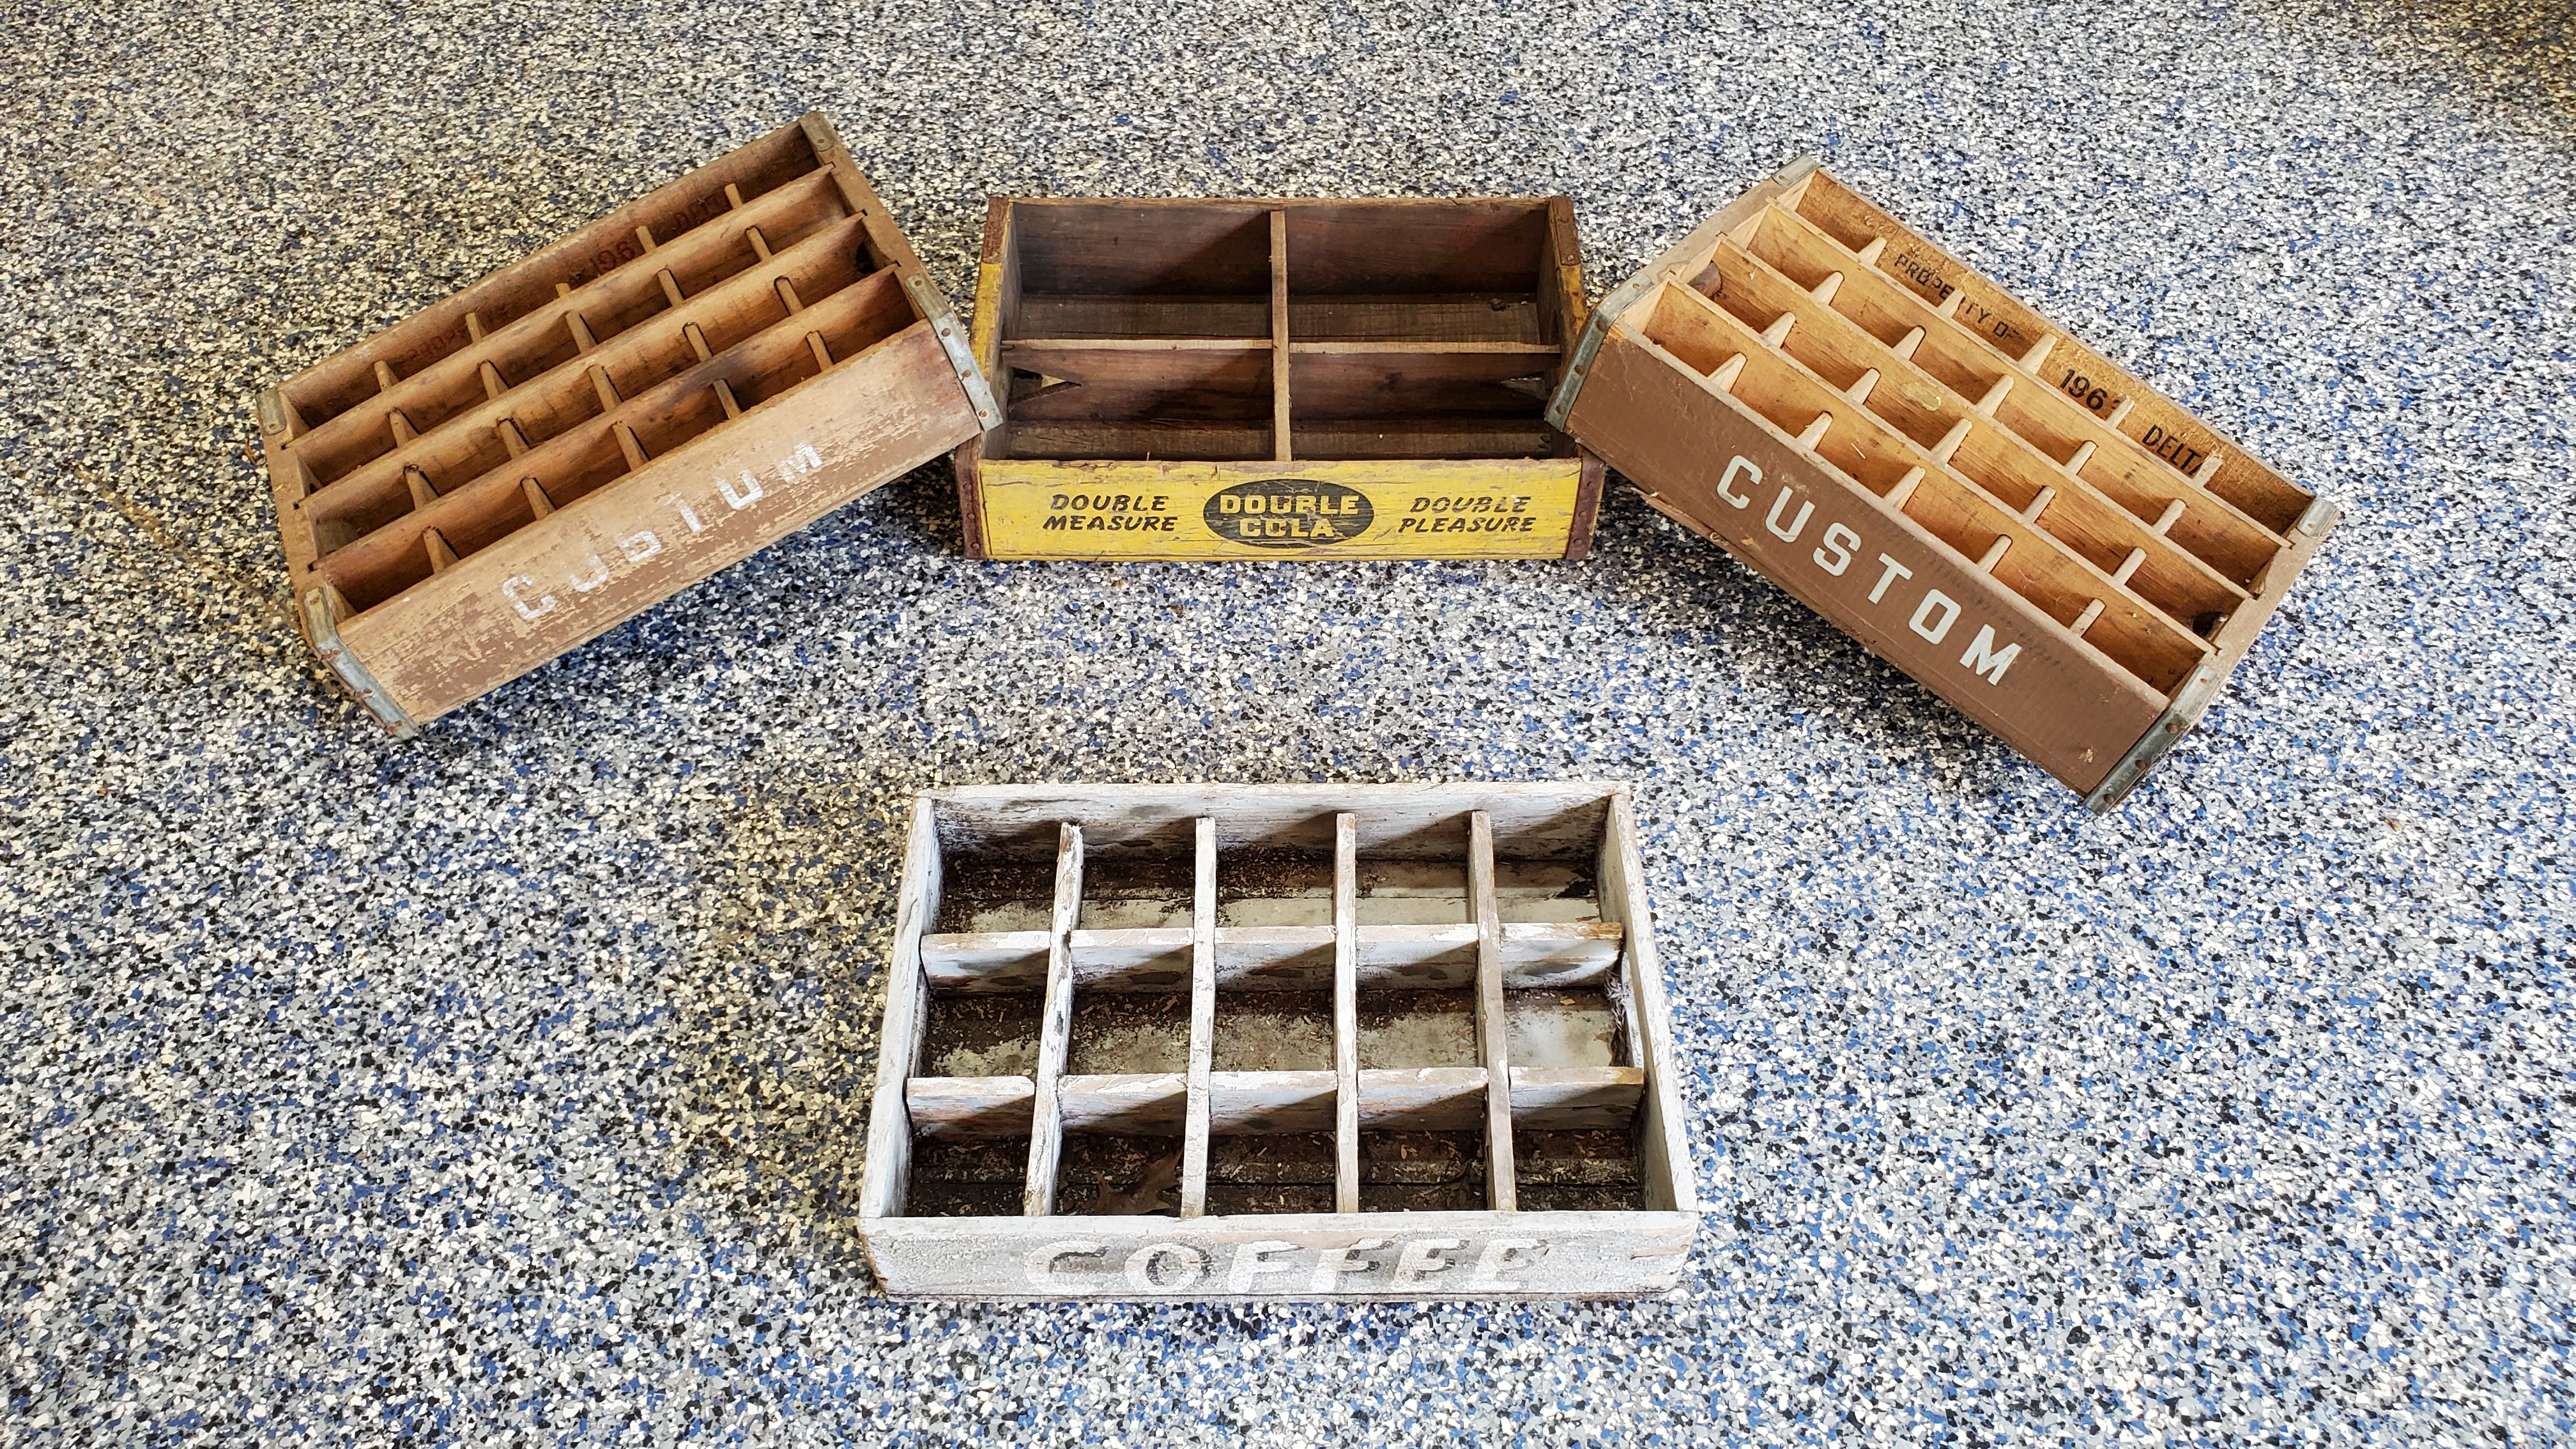 Royal Cola Crates & Other Crates